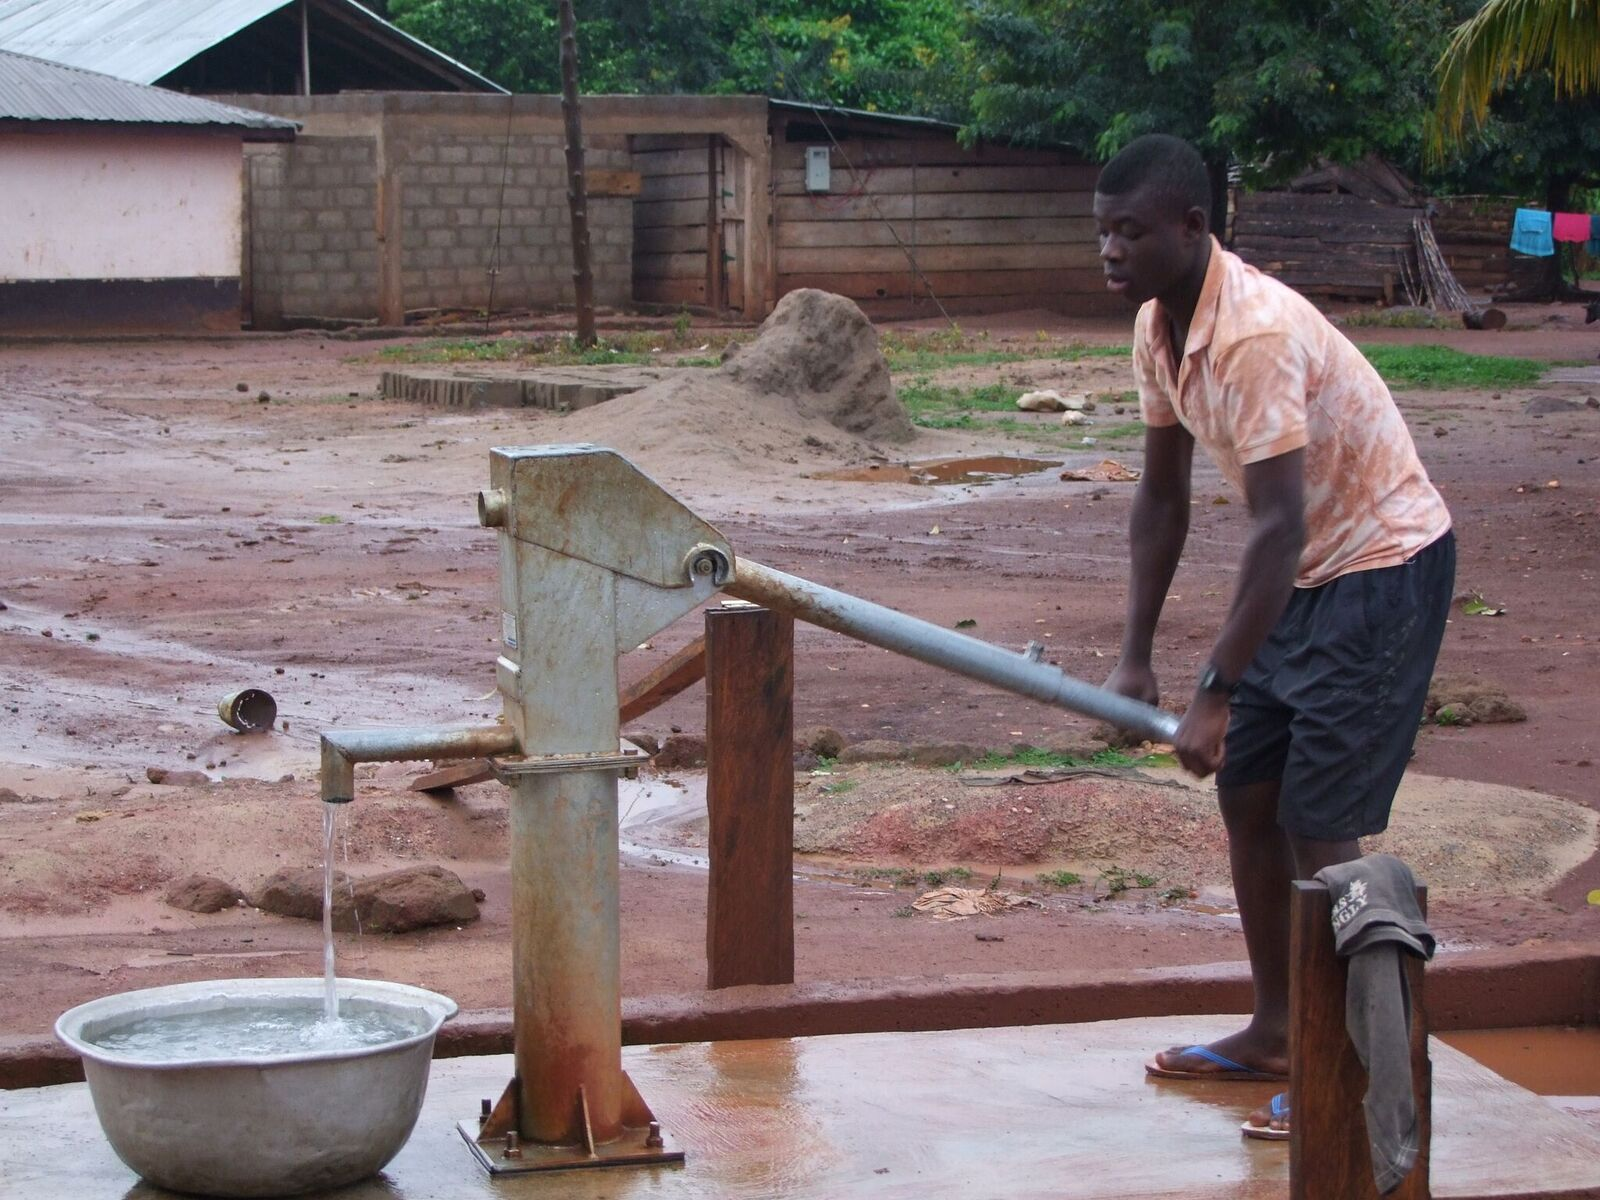 Hand pump borehole at Terchire community park